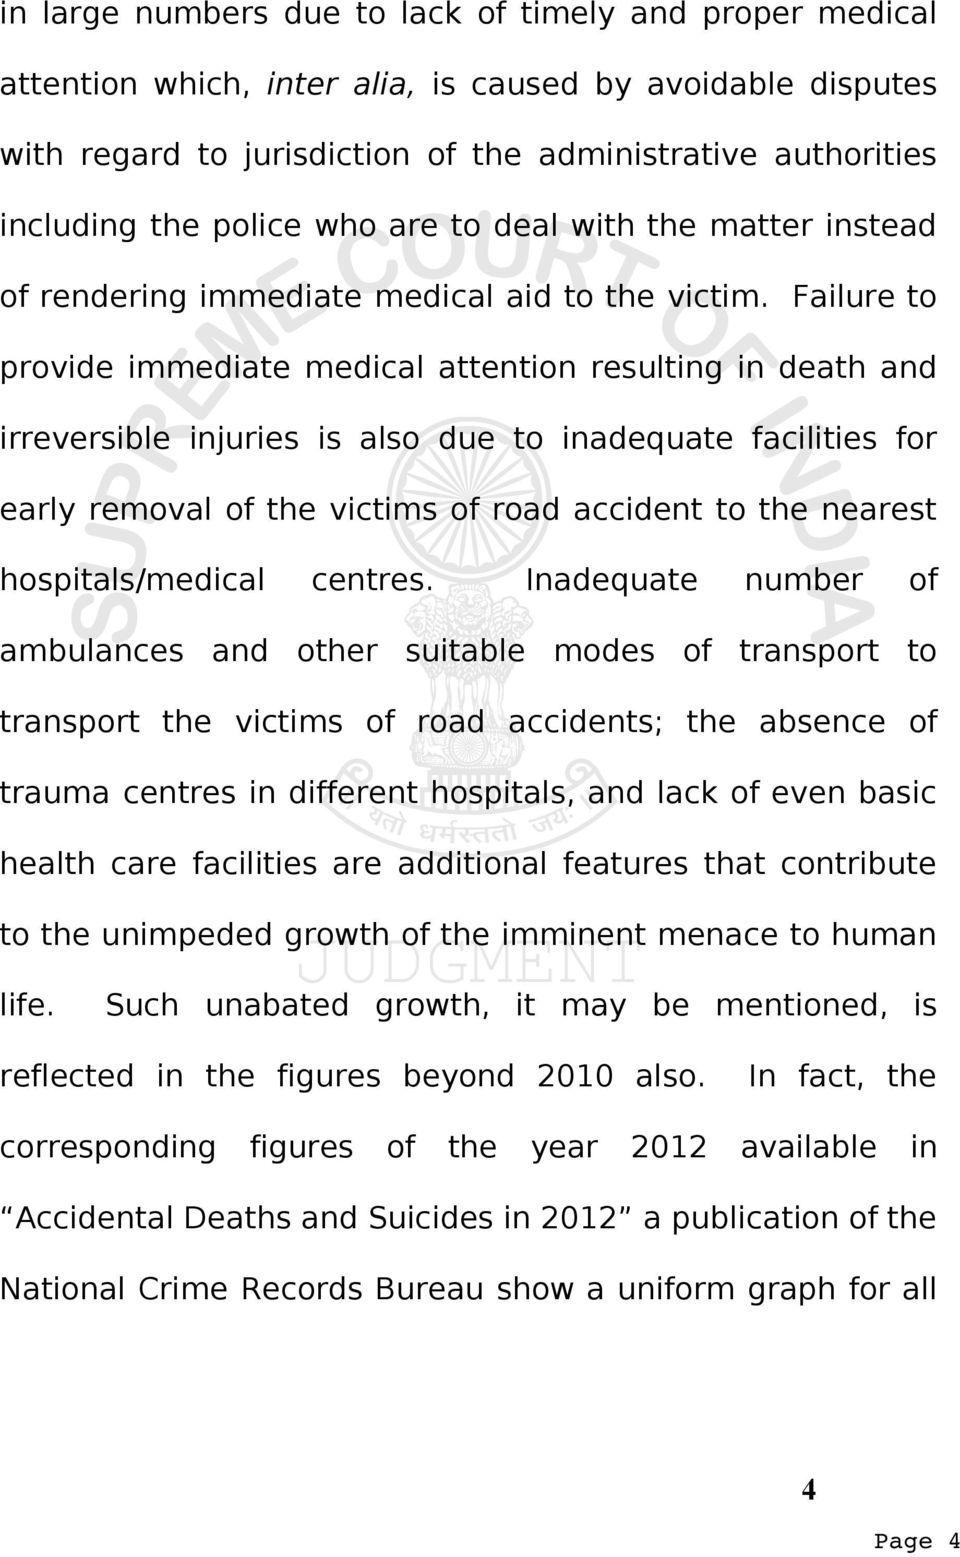 Failure to provide immediate medical attention resulting in death and irreversible injuries is also due to inadequate facilities for early removal of the victims of road accident to the nearest